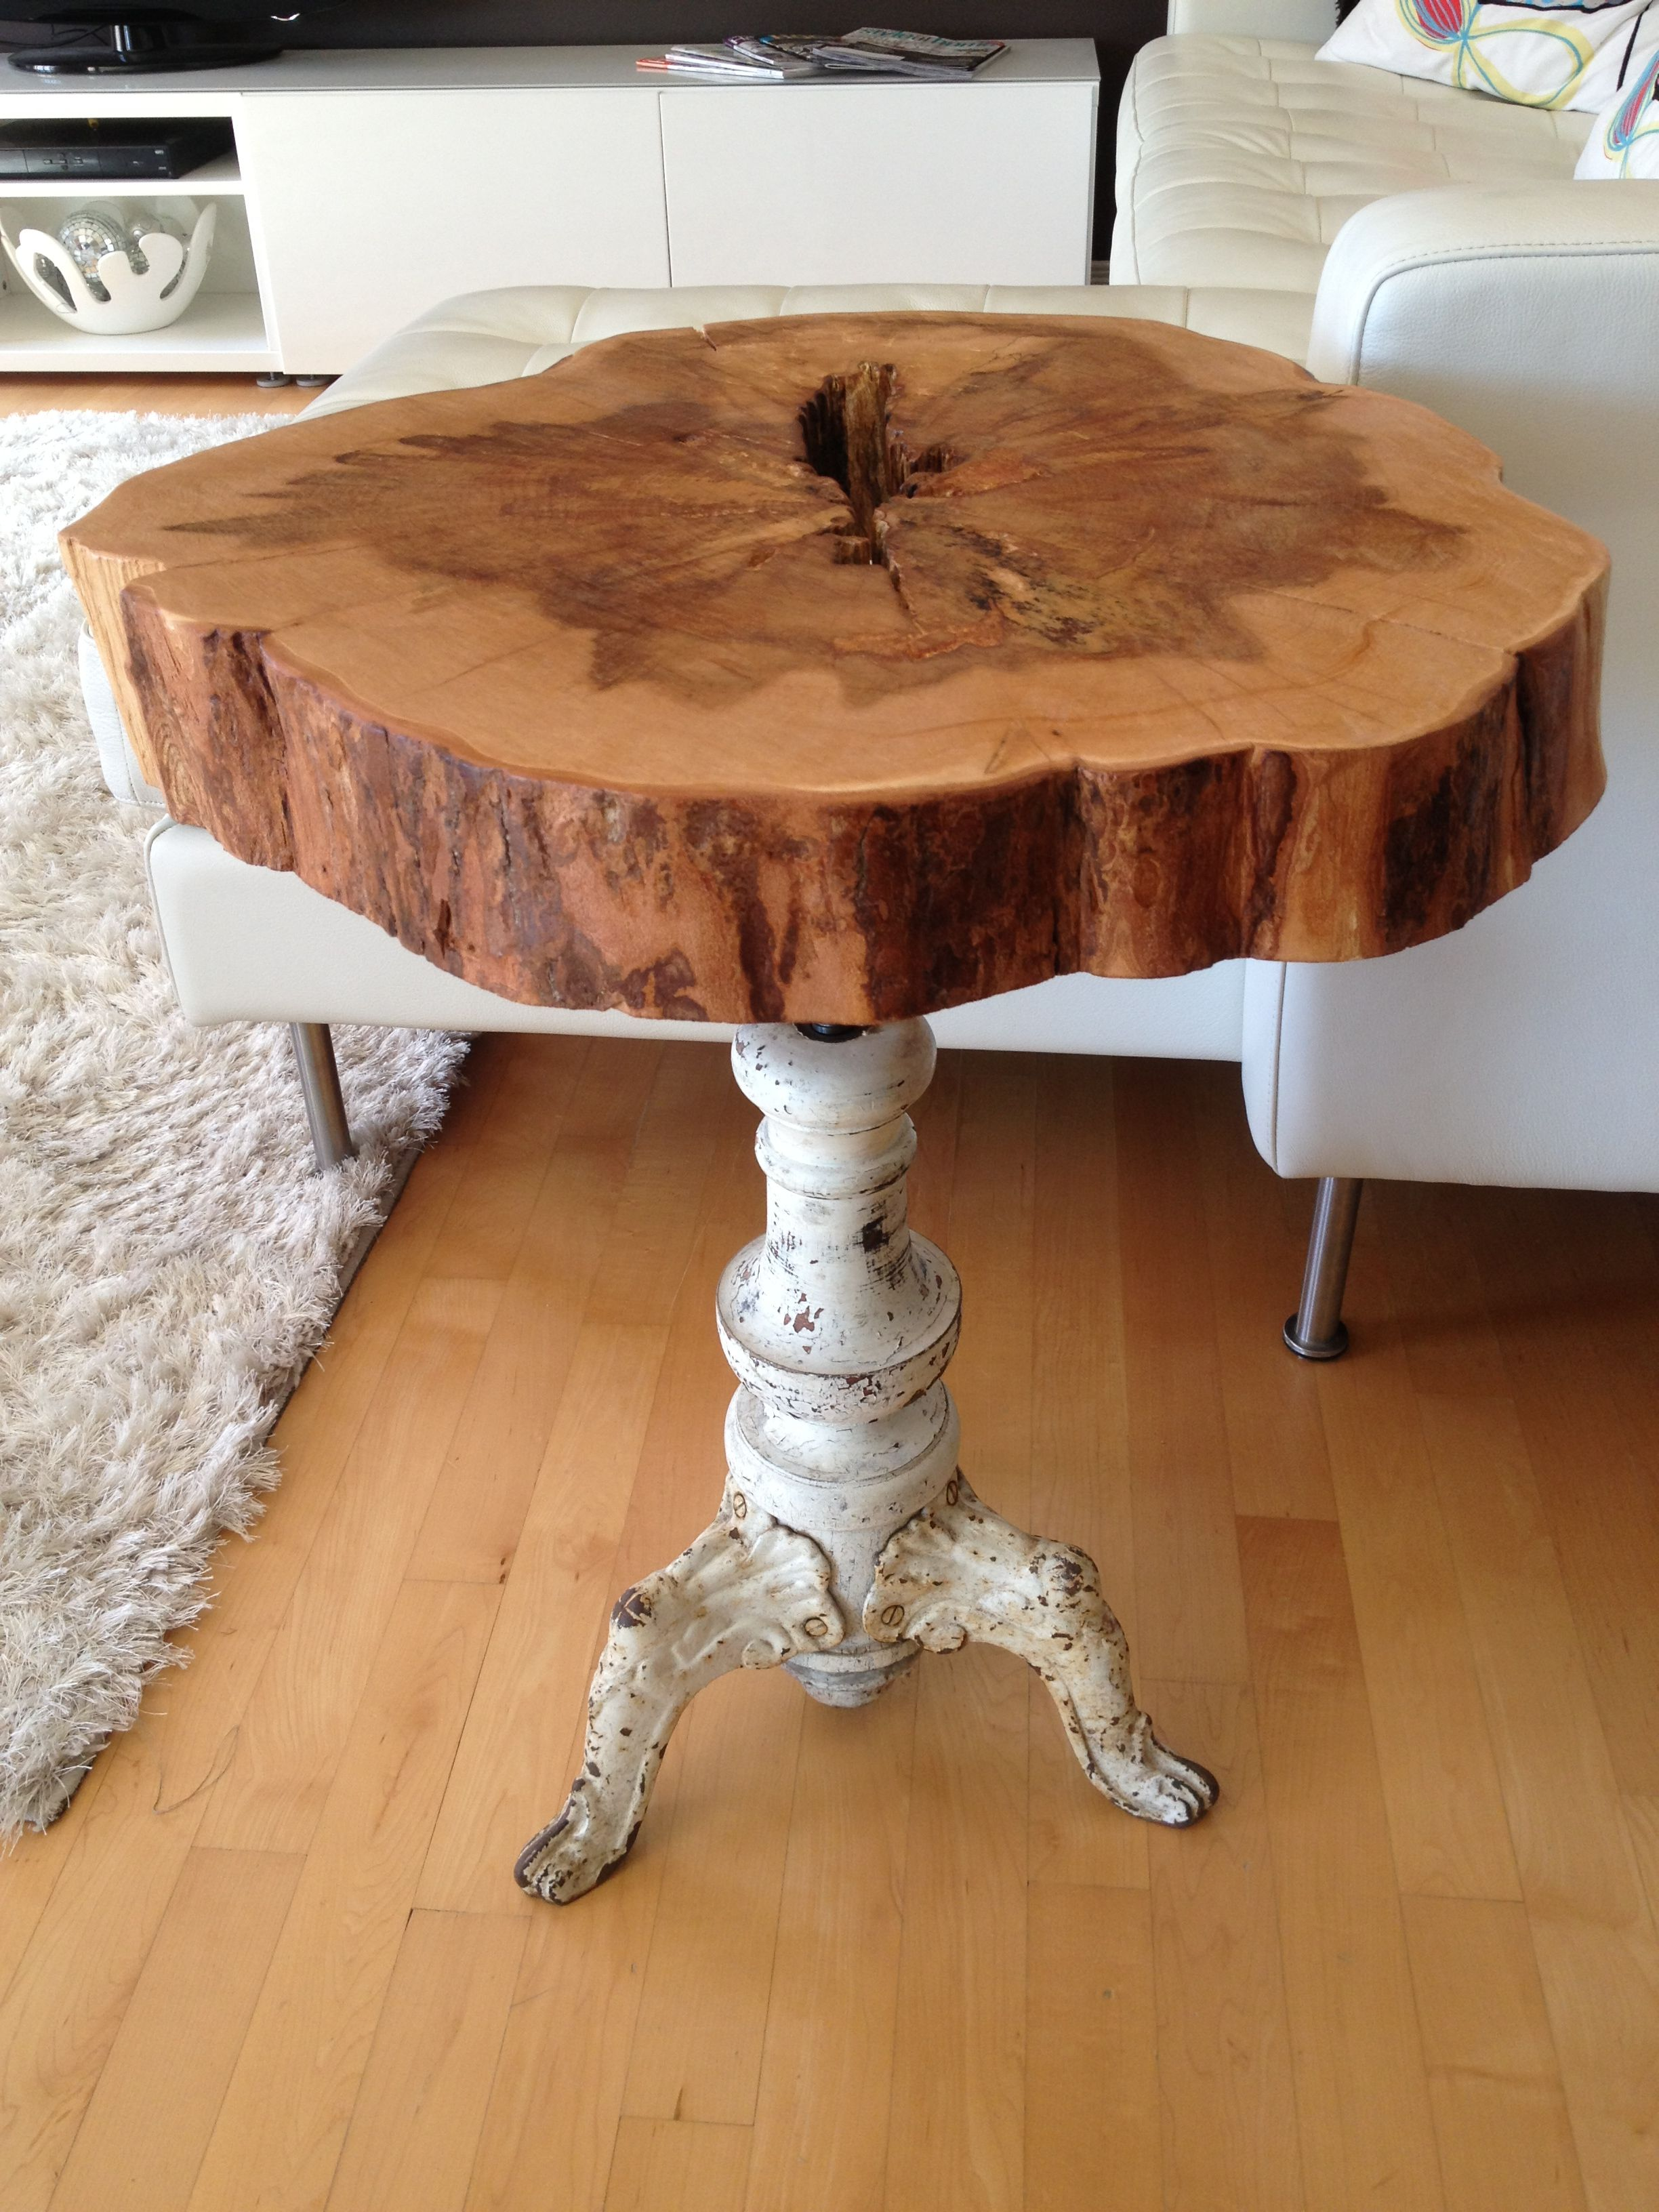 diy tree stump table ideas how make them wood slab accent using recycled materials for why not lamp design glass end top jcpenney curtains couch side leg extensions target tables